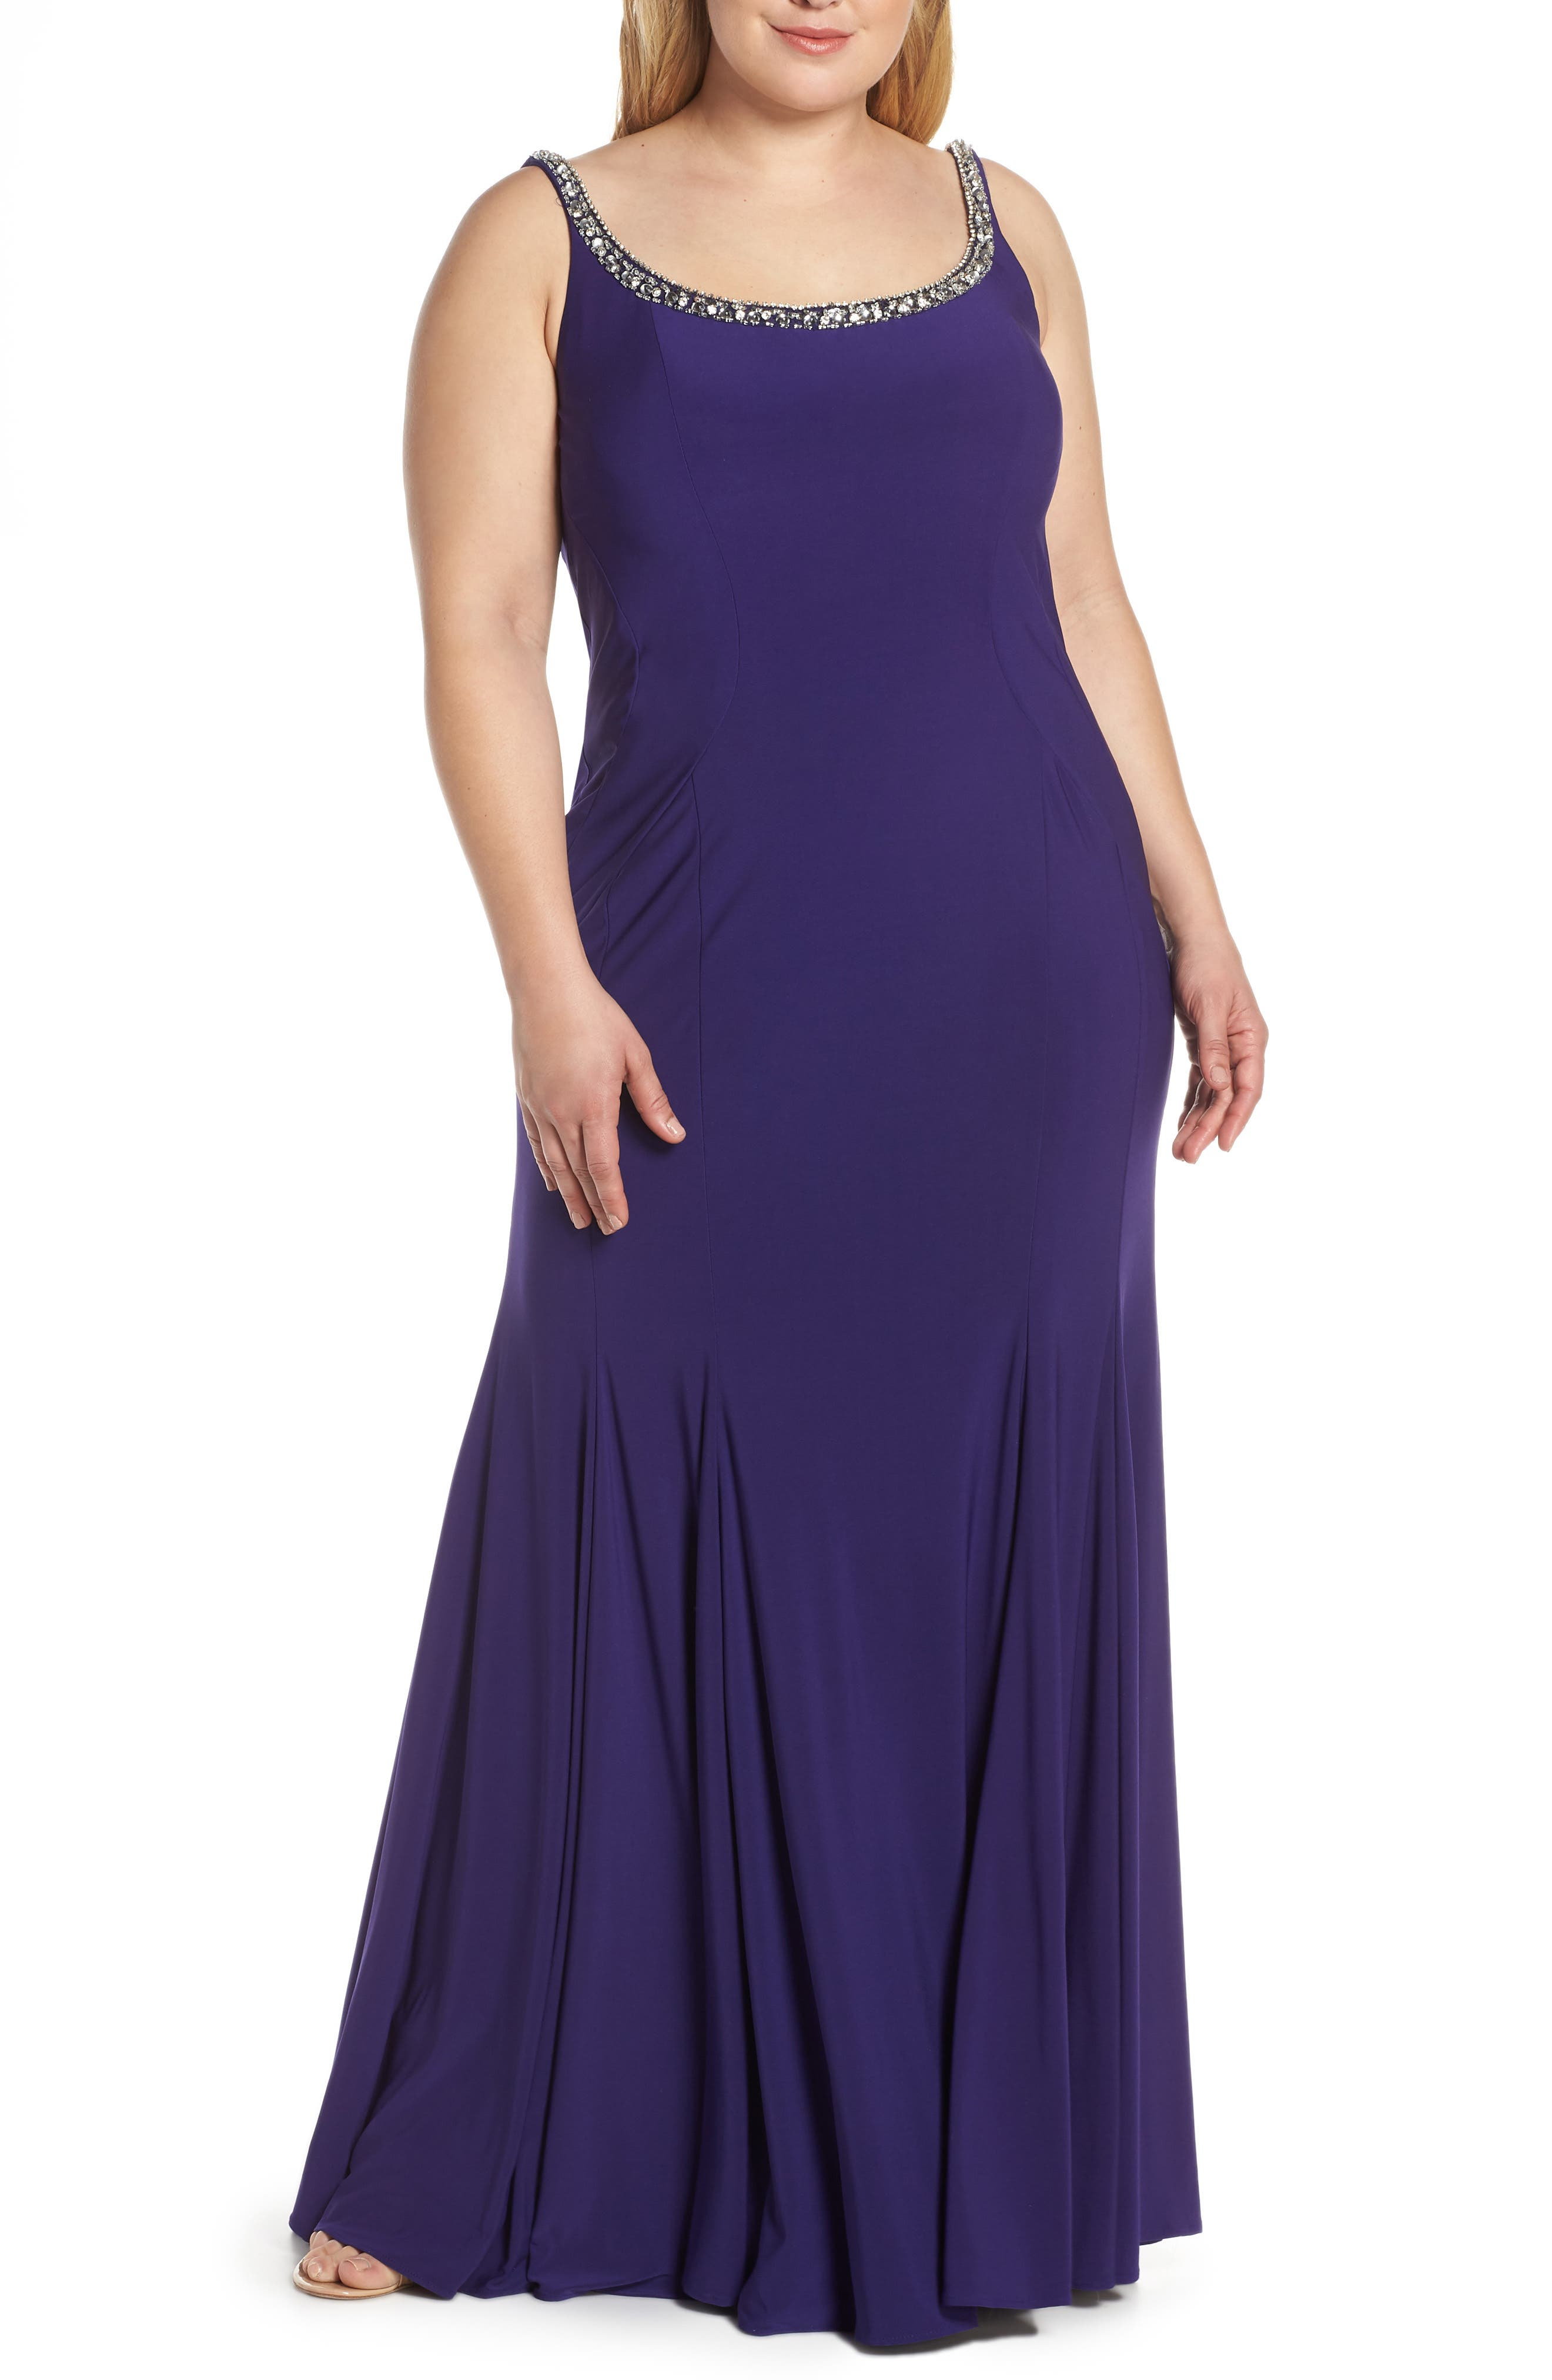 Plus Size MAC Duggal Jeweled Neck Lace-Up Back Jersey Gown, Purple